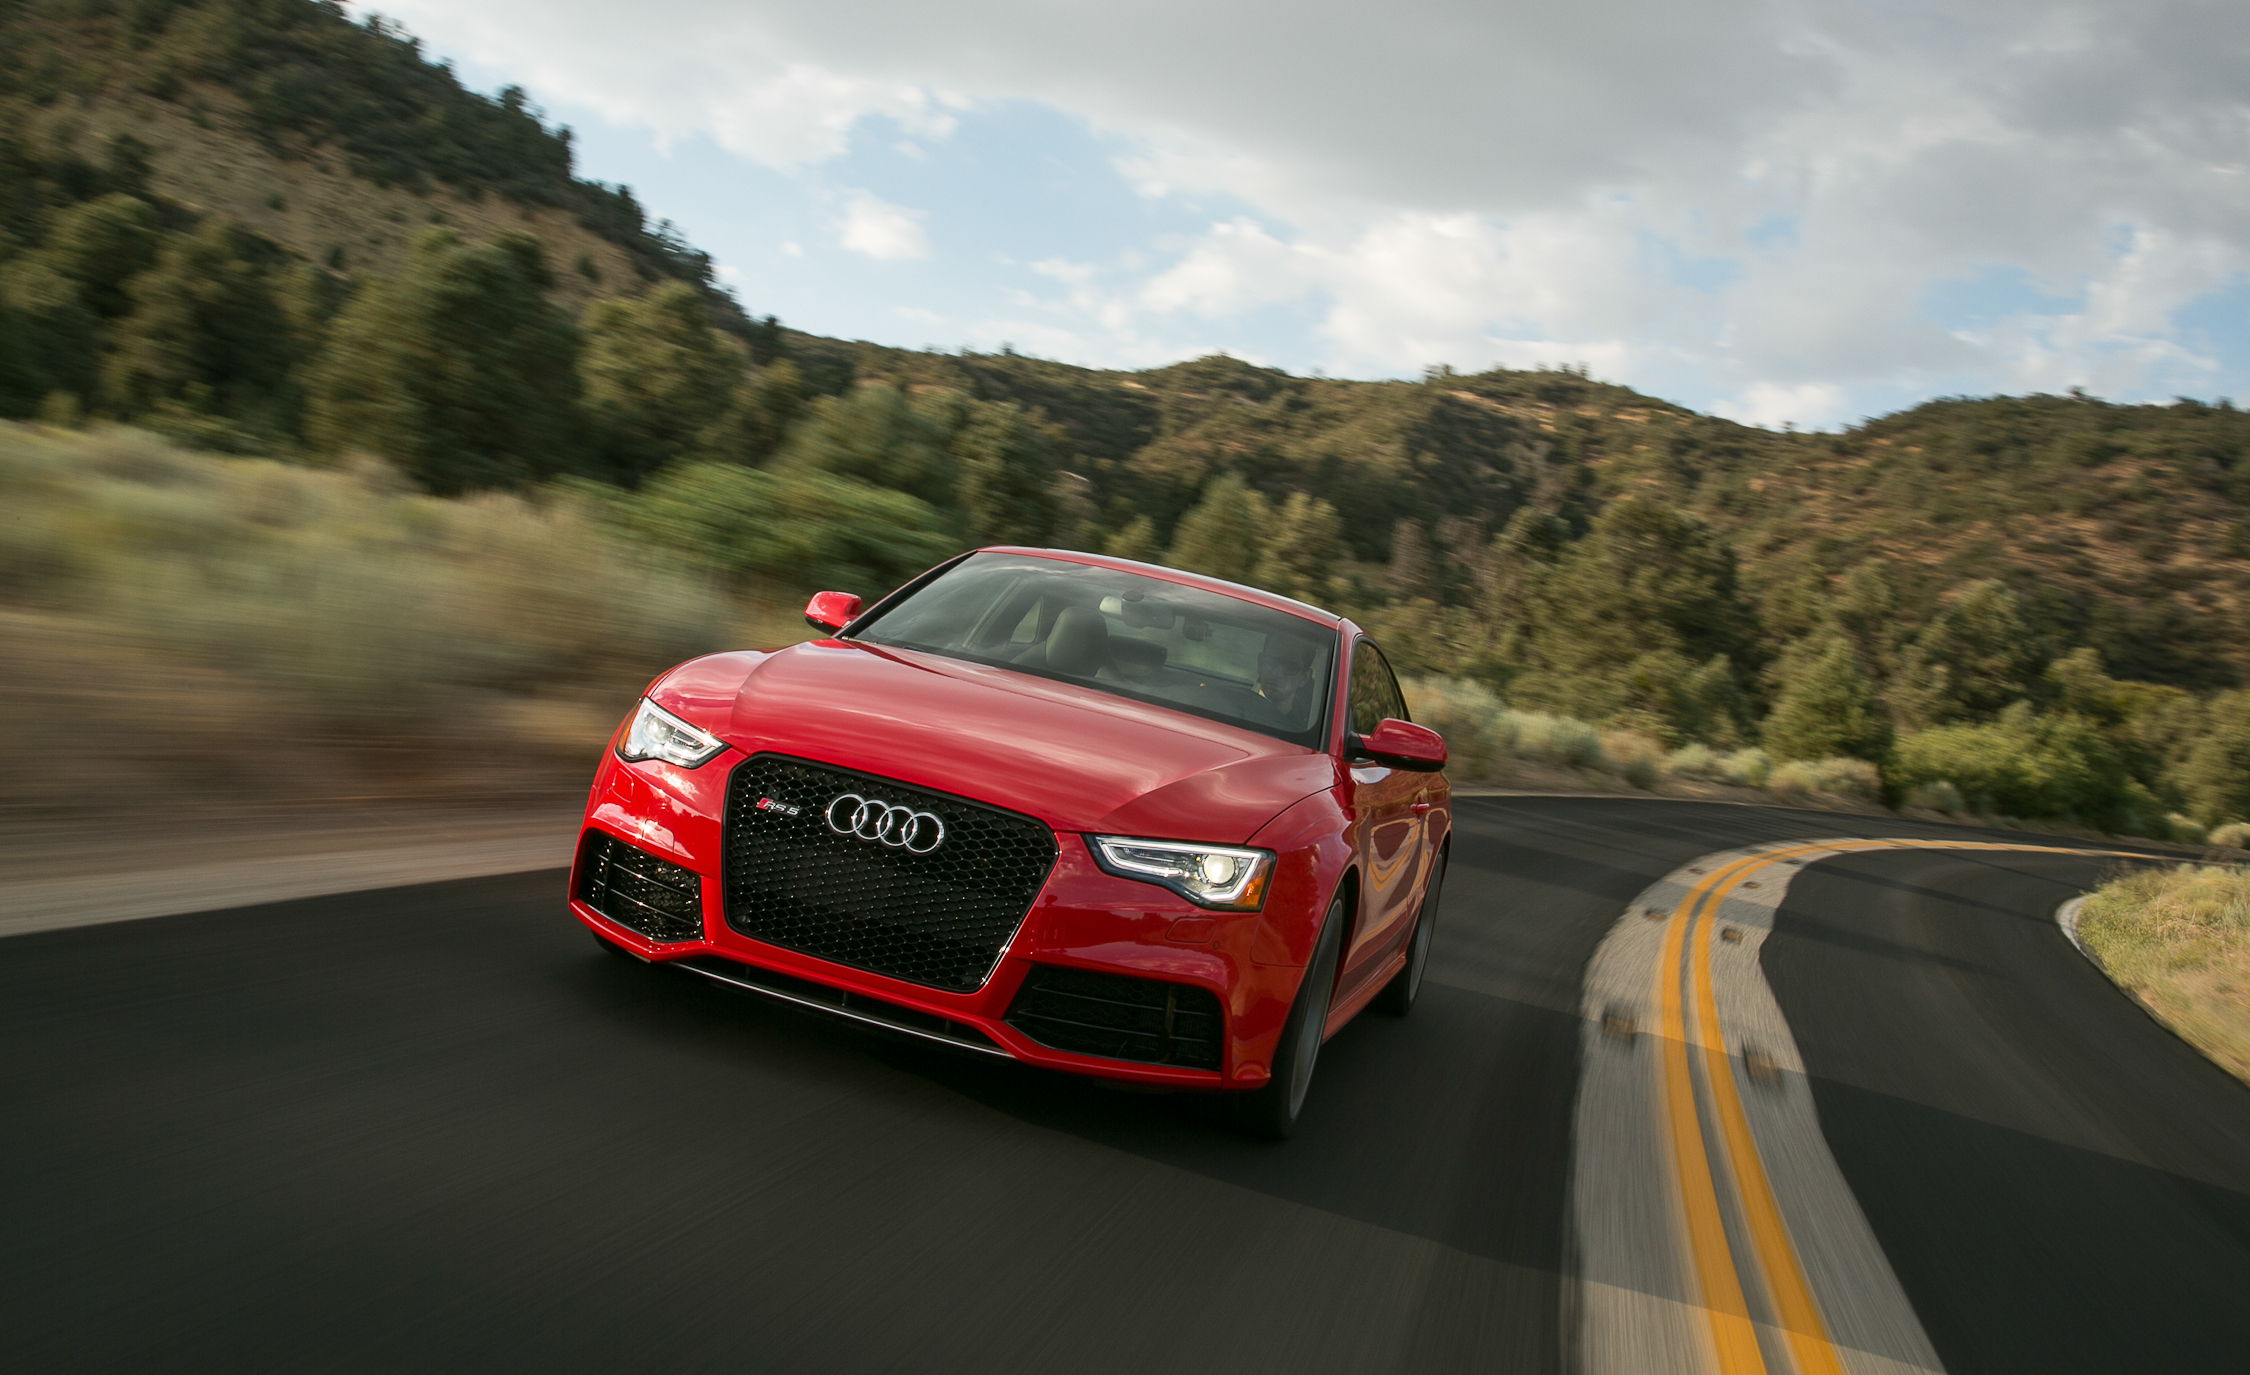 2013 Audi RS 5 Test Drive Front Profile (View 37 of 41)